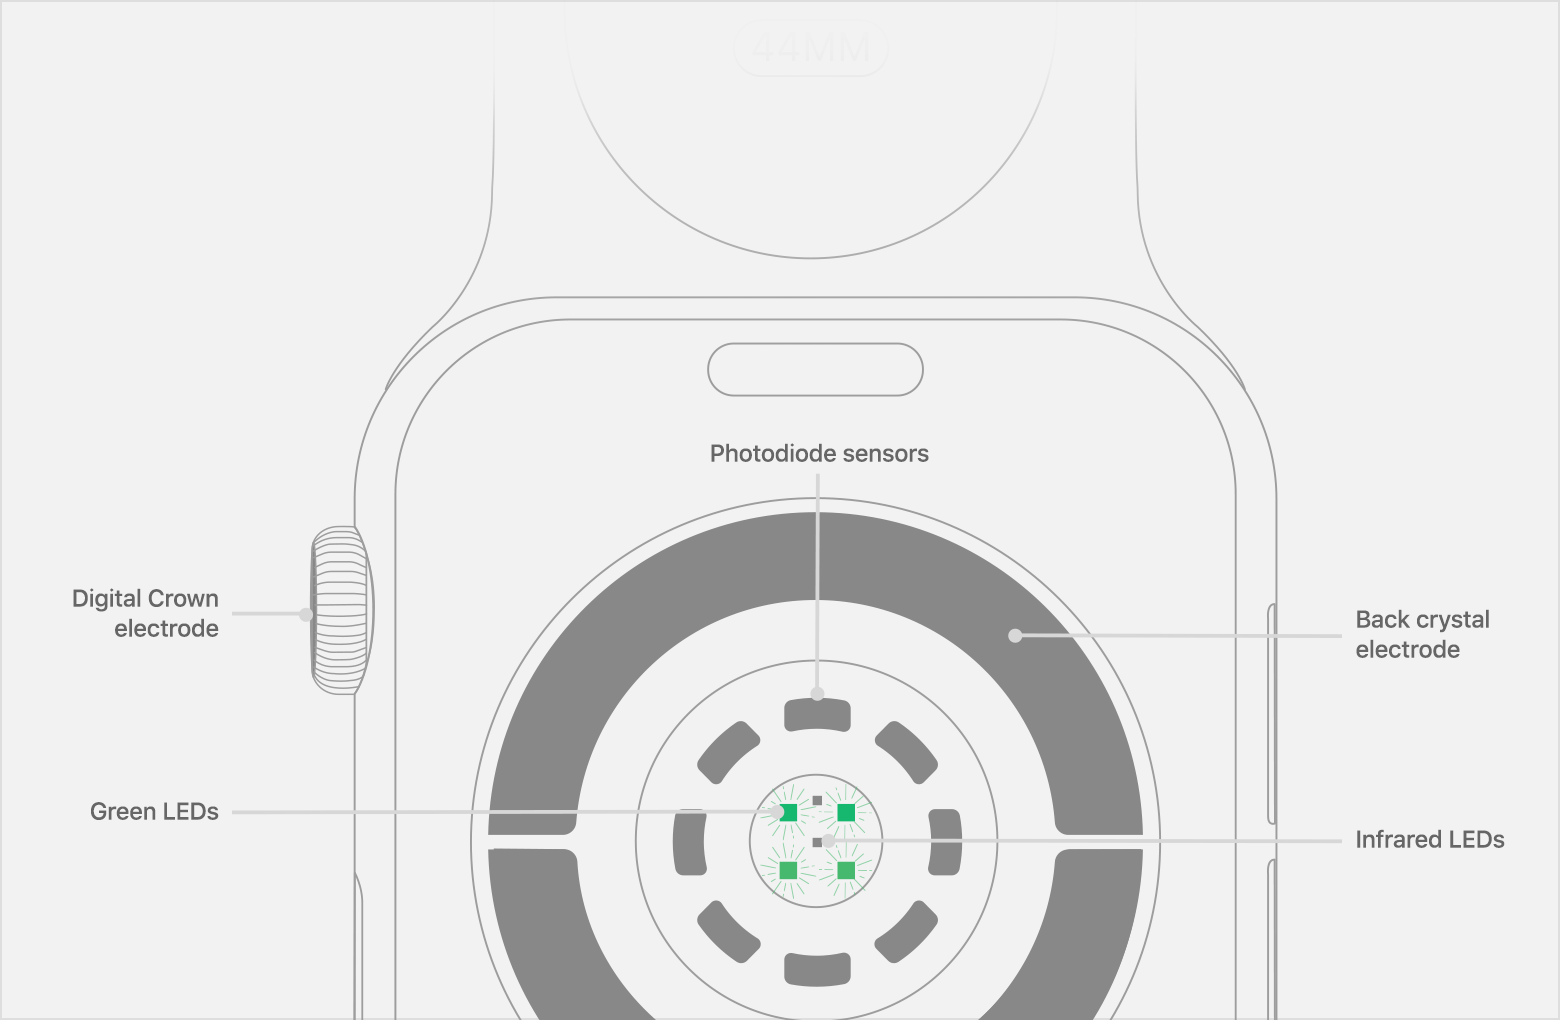 Emplacement des photodiodes, des voyants LED infrarouges et verts sur l'Apple Watch Series 4.